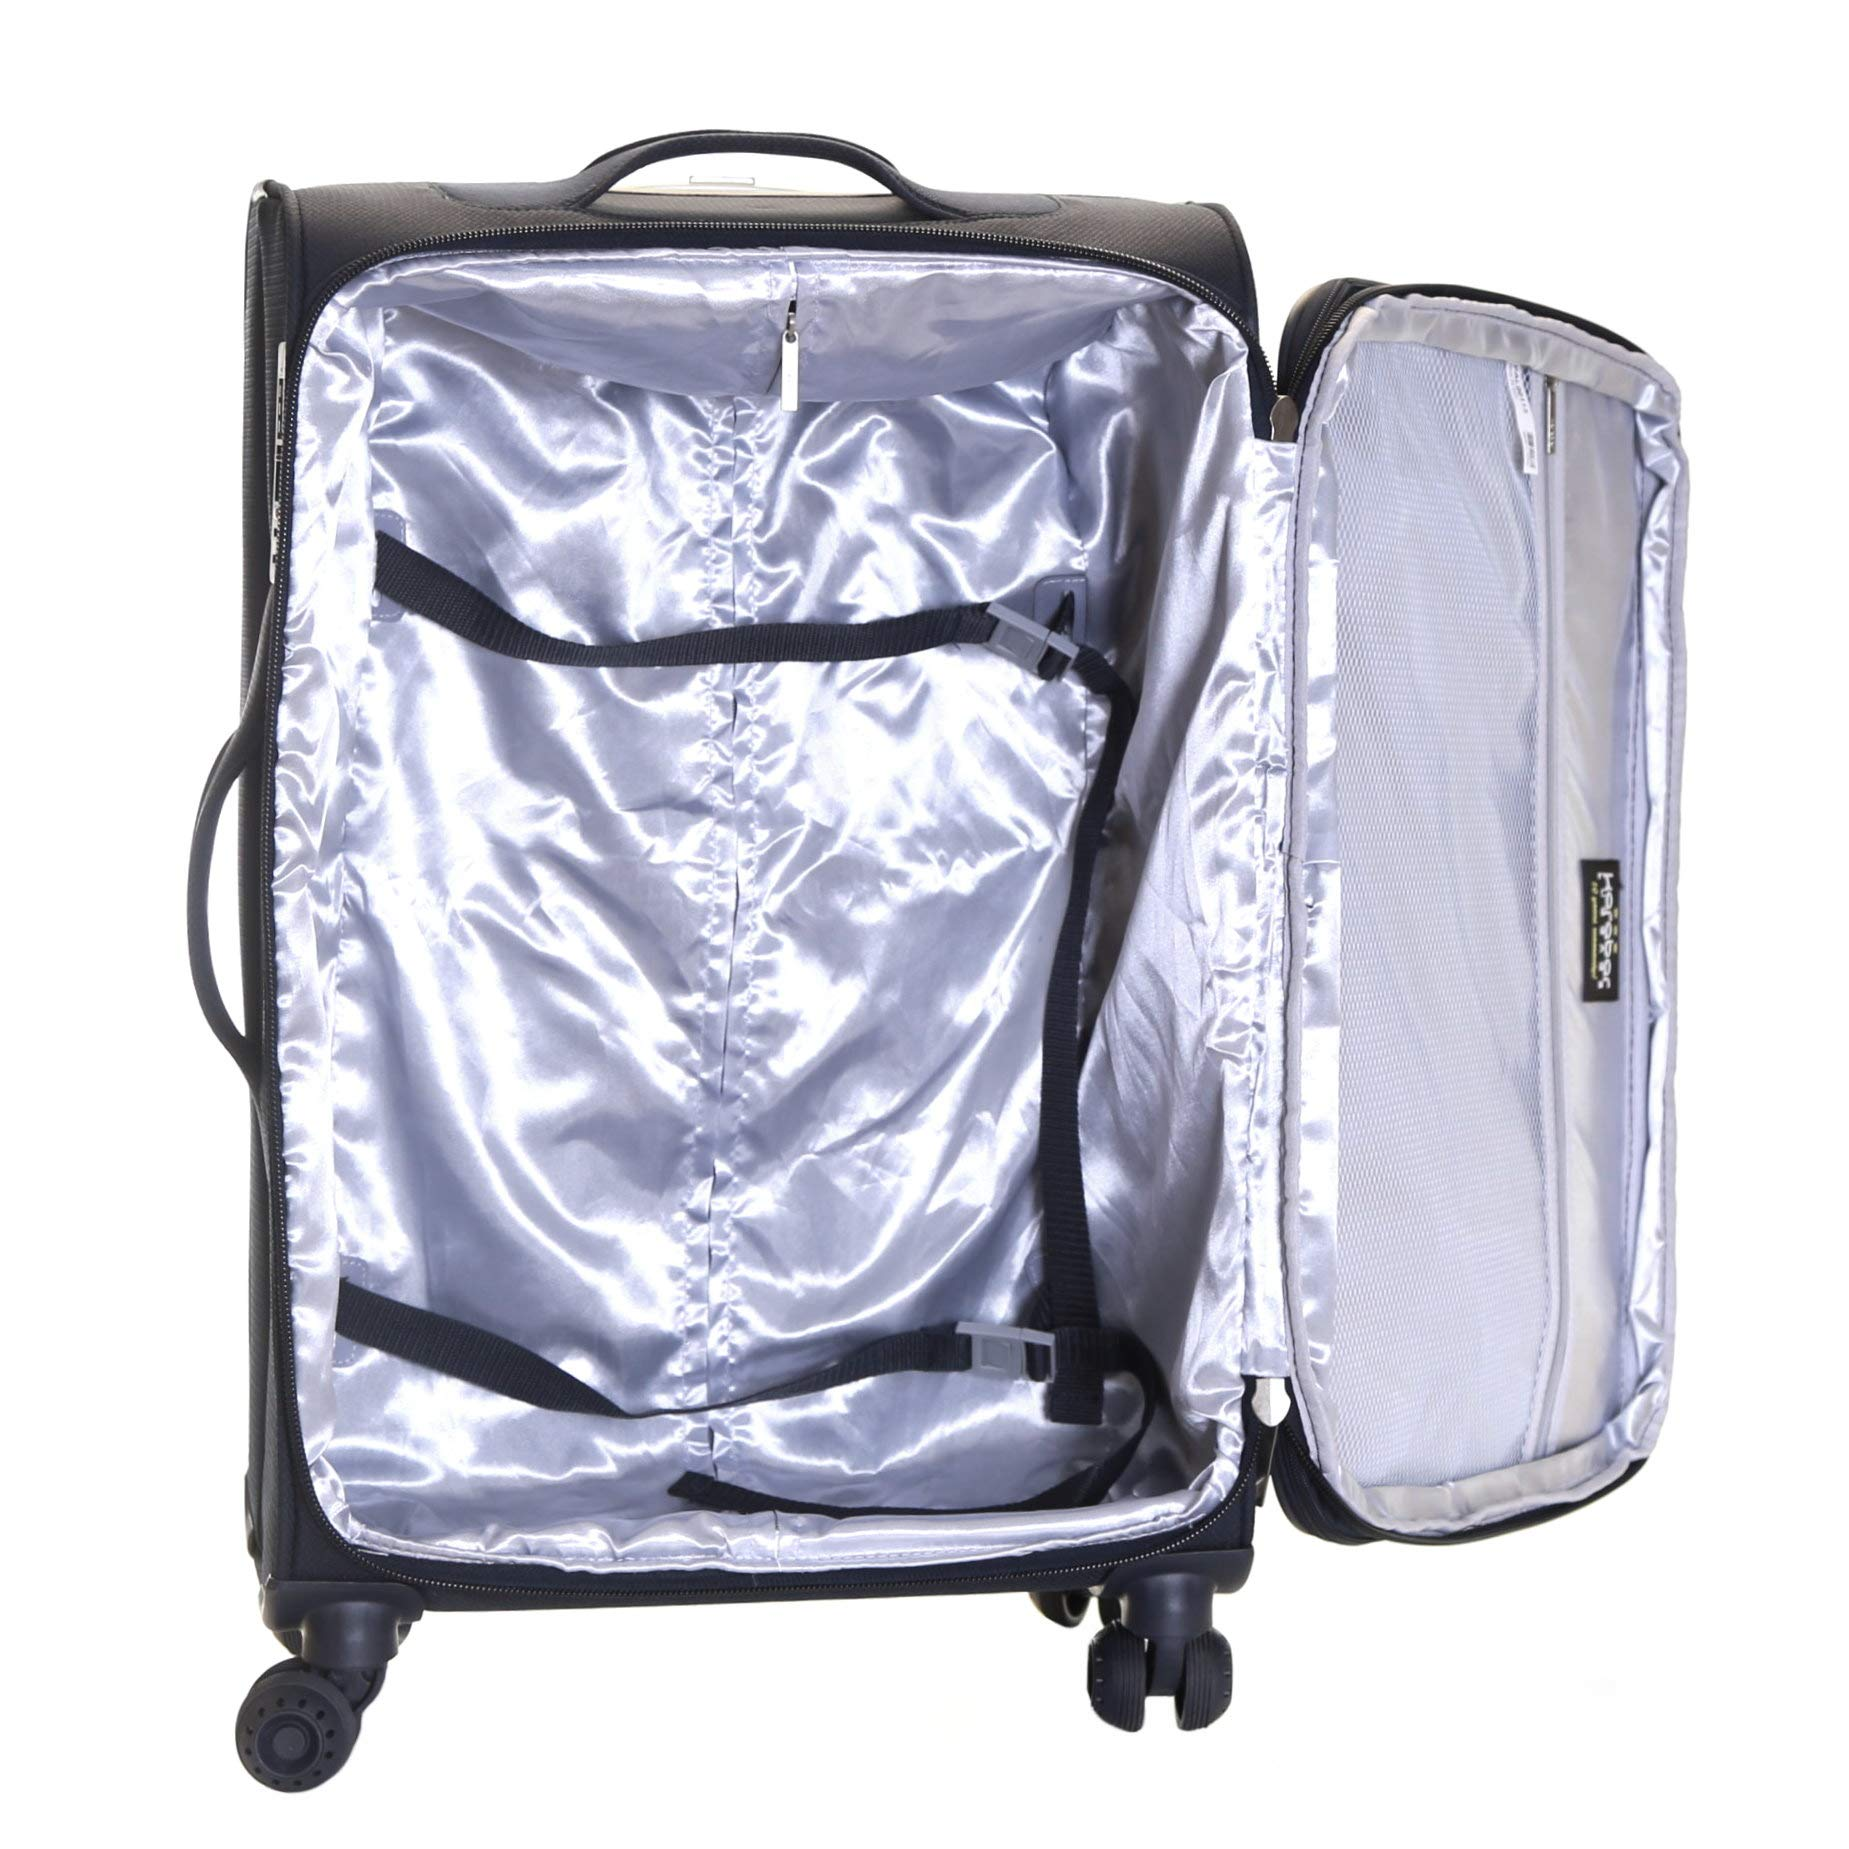 777a7a6f77c7 Karabar Expandable Lightweight Suitcases Luggage Bags Small Carry-on Cabin,  Medium and Large Soft Shell Sets with 4 Spinner Wheels and Integrated TSA  ...